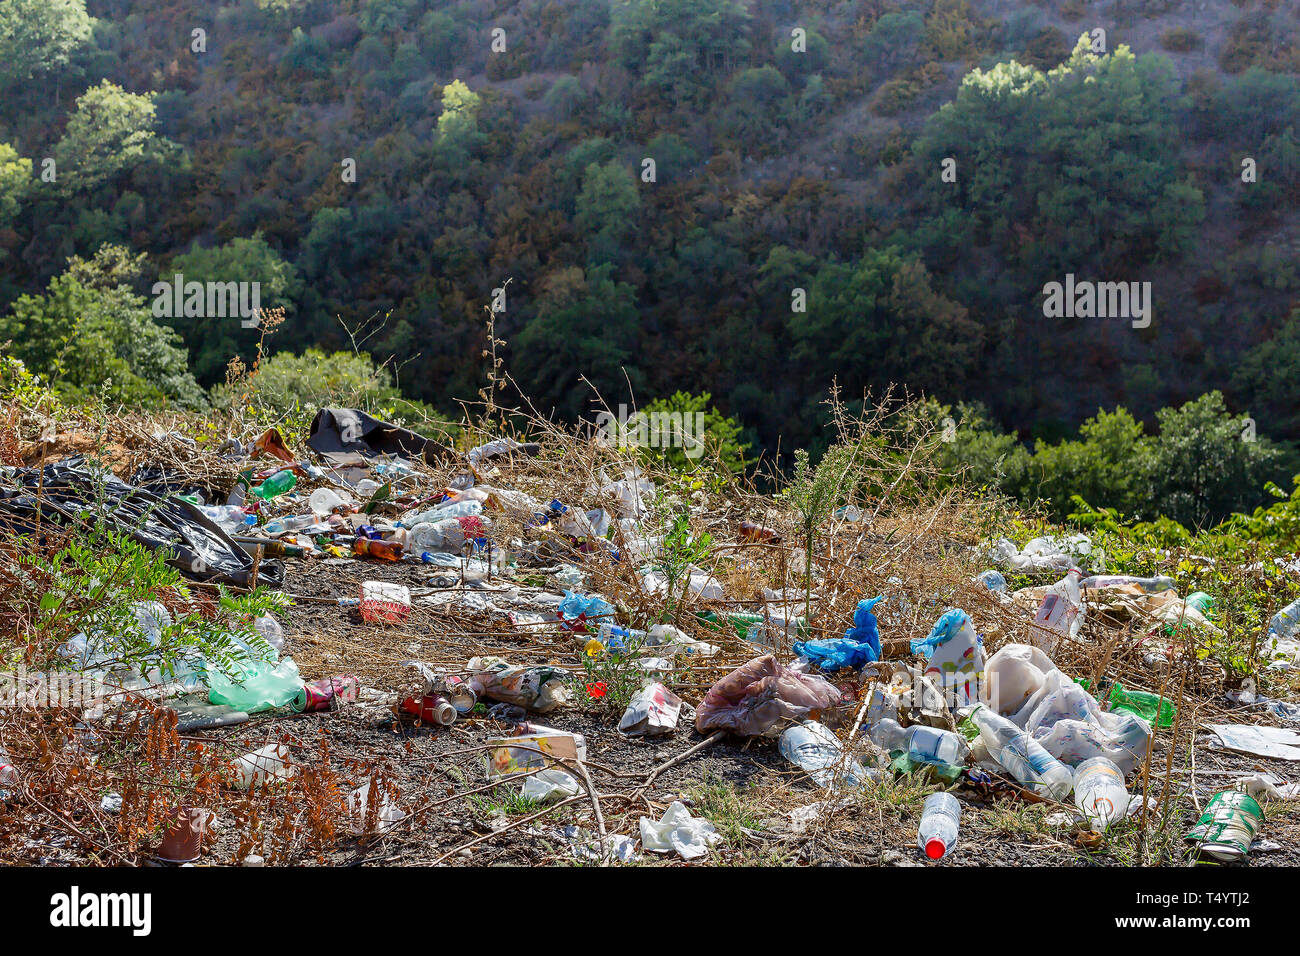 Plastic bottles, bags and other trash along the road. Trash at roadside. Concept of environmental pollution - Stock Image